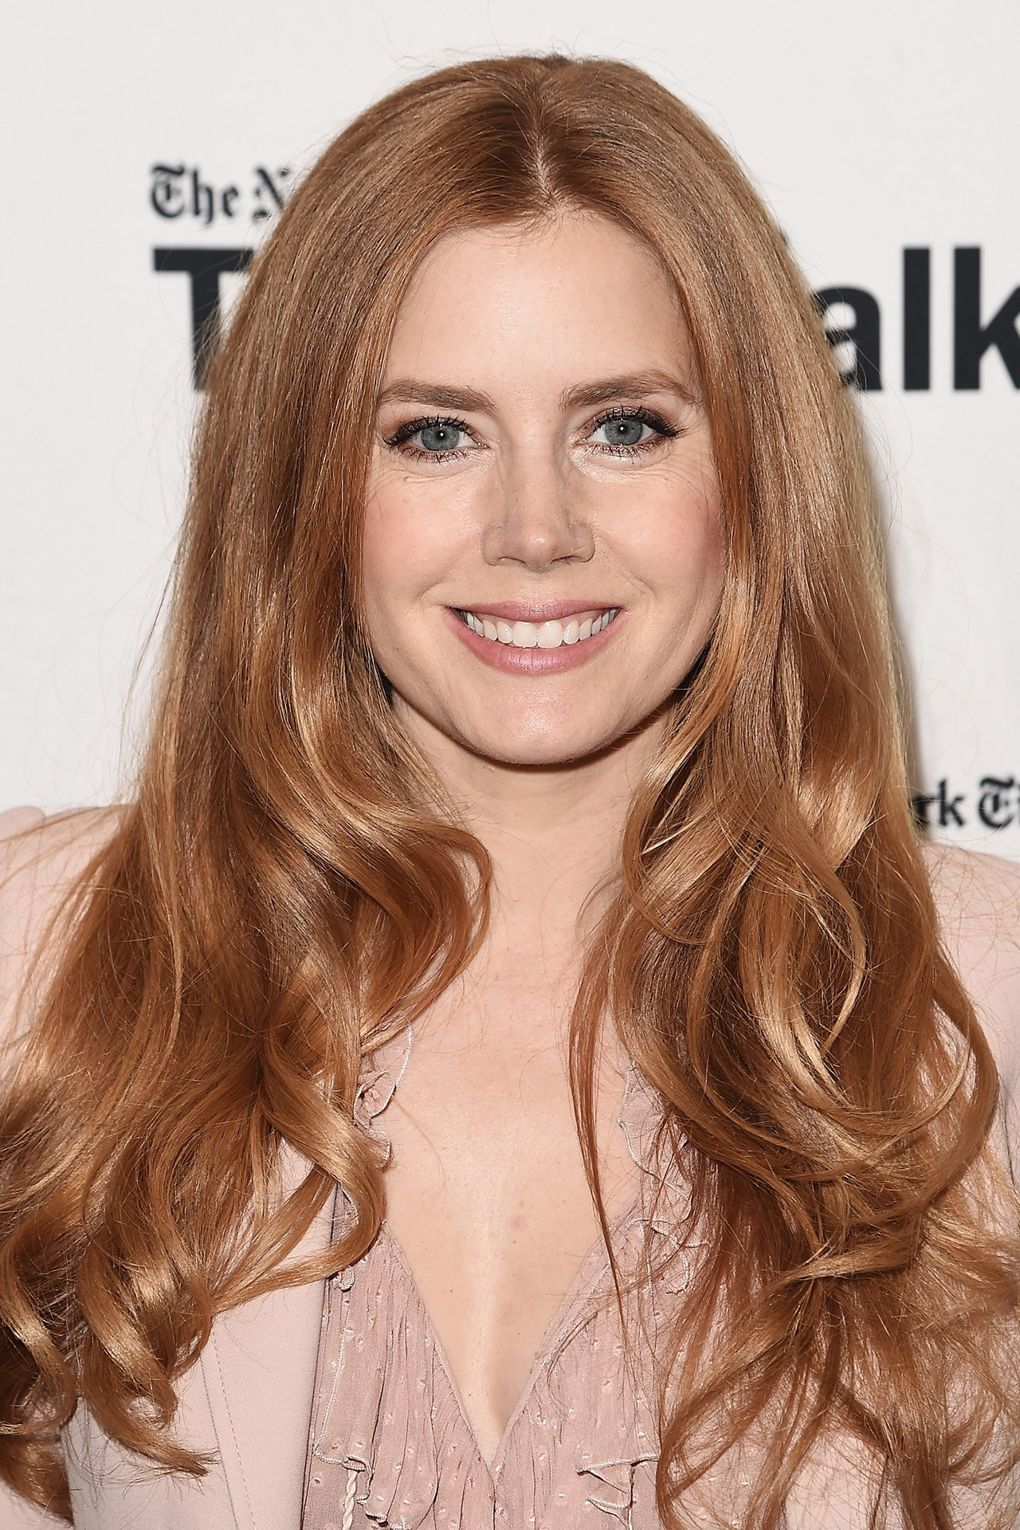 65 Of The Best Celebrity Redhead